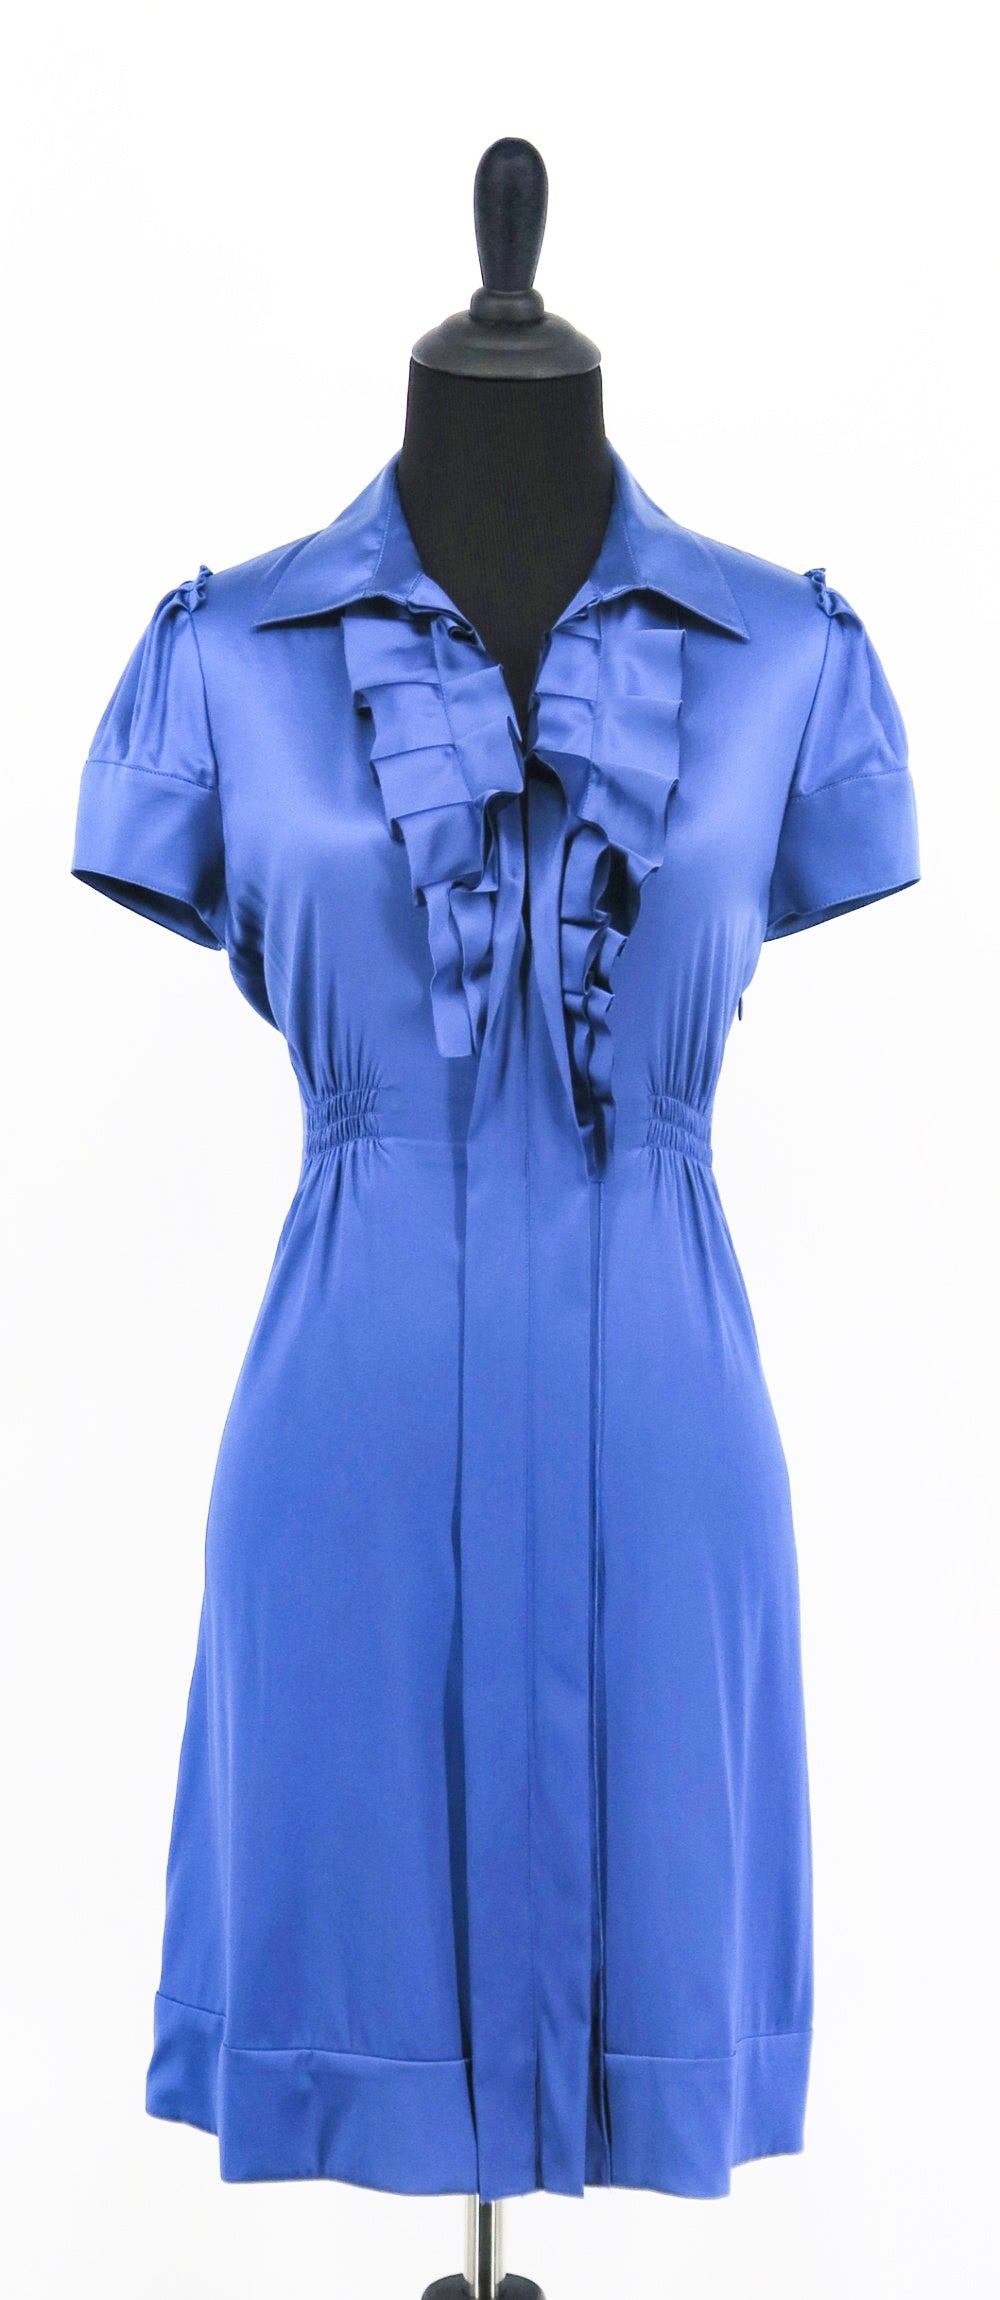 BCBG Maxazria Silk Pleatted Ruffle Shirt Dress